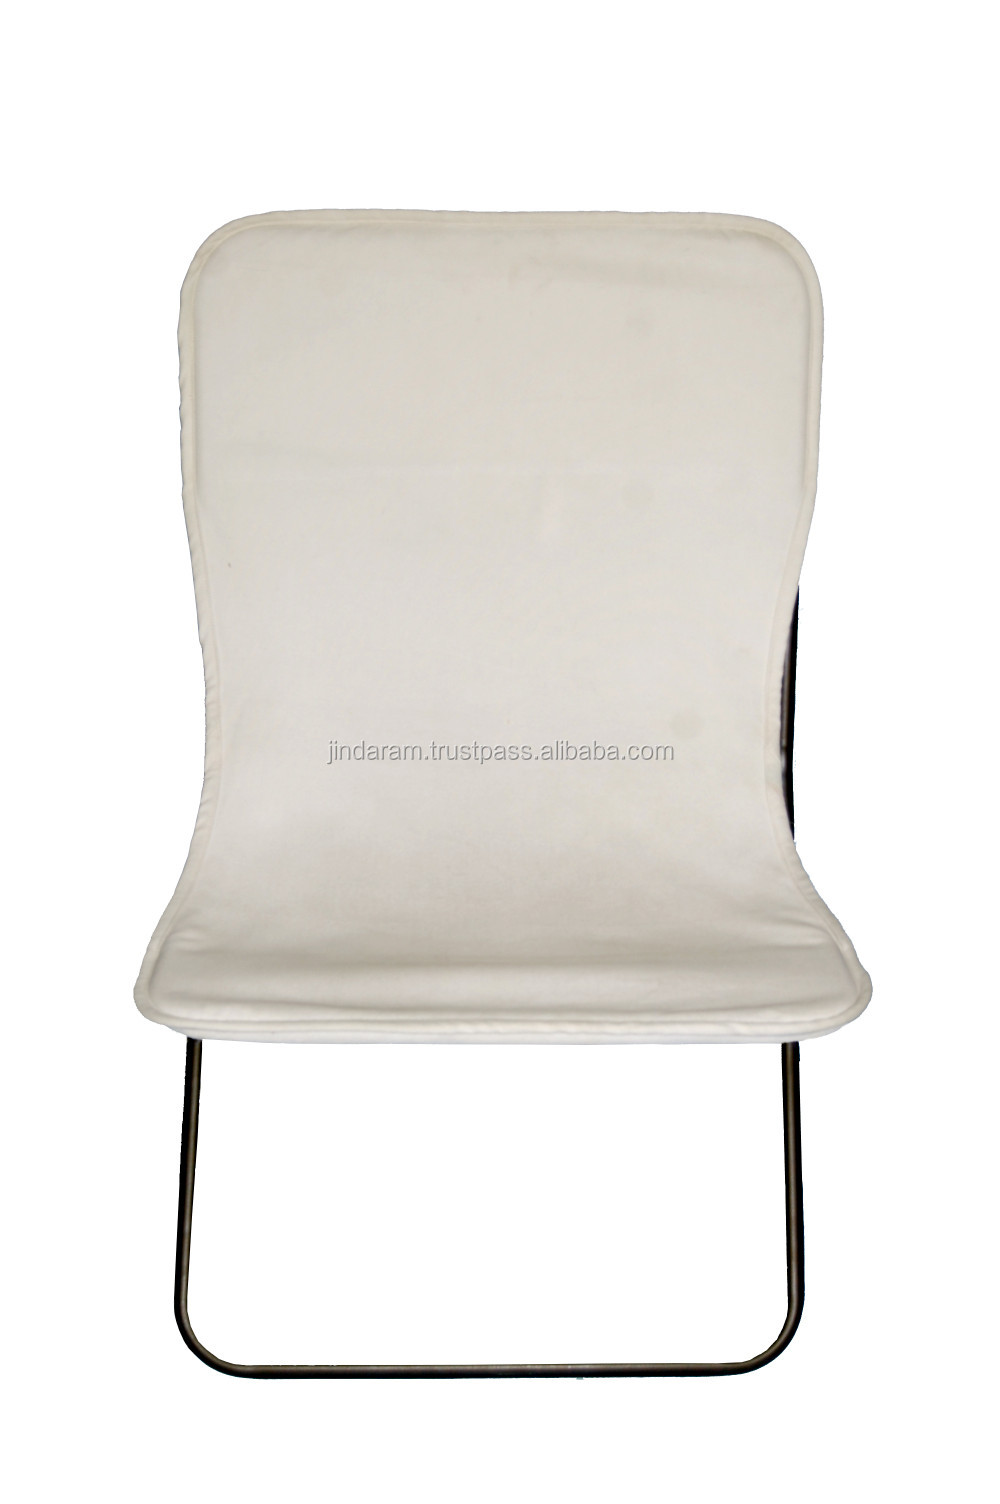 White Canvas Small Square Butterfly Chair.JPG